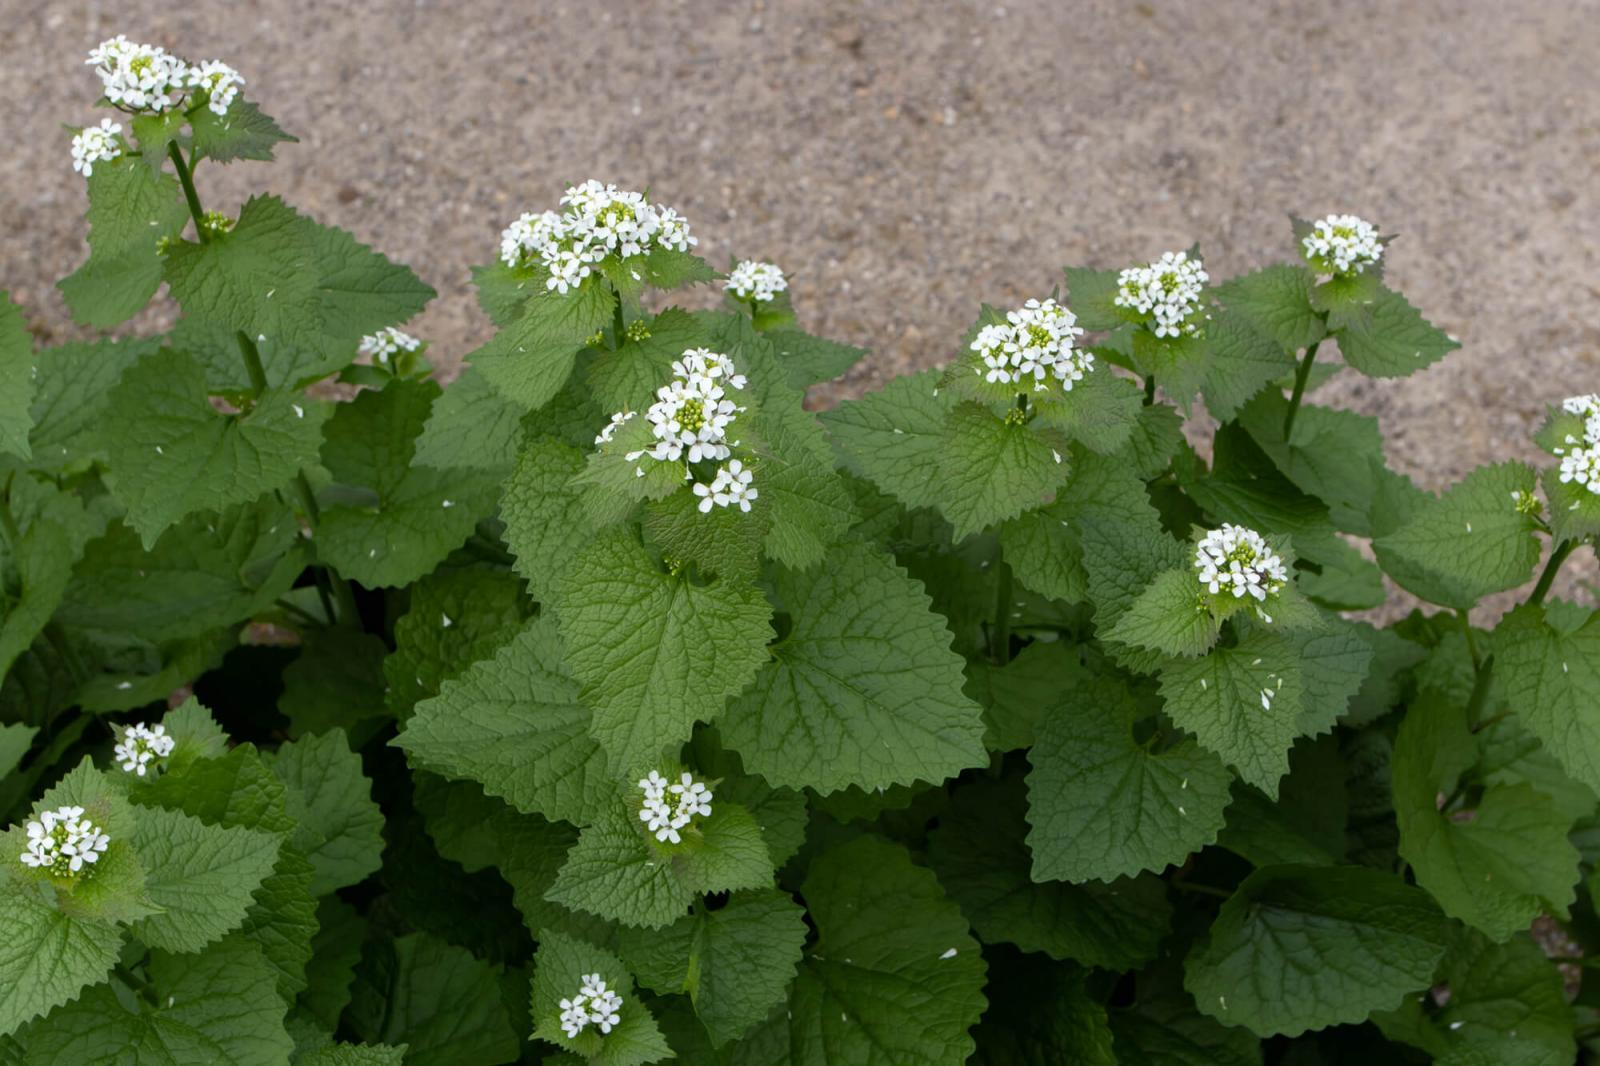 Garlic mustard can actually alter the soil chemistry and inhibit all other plants from growing in your garden.